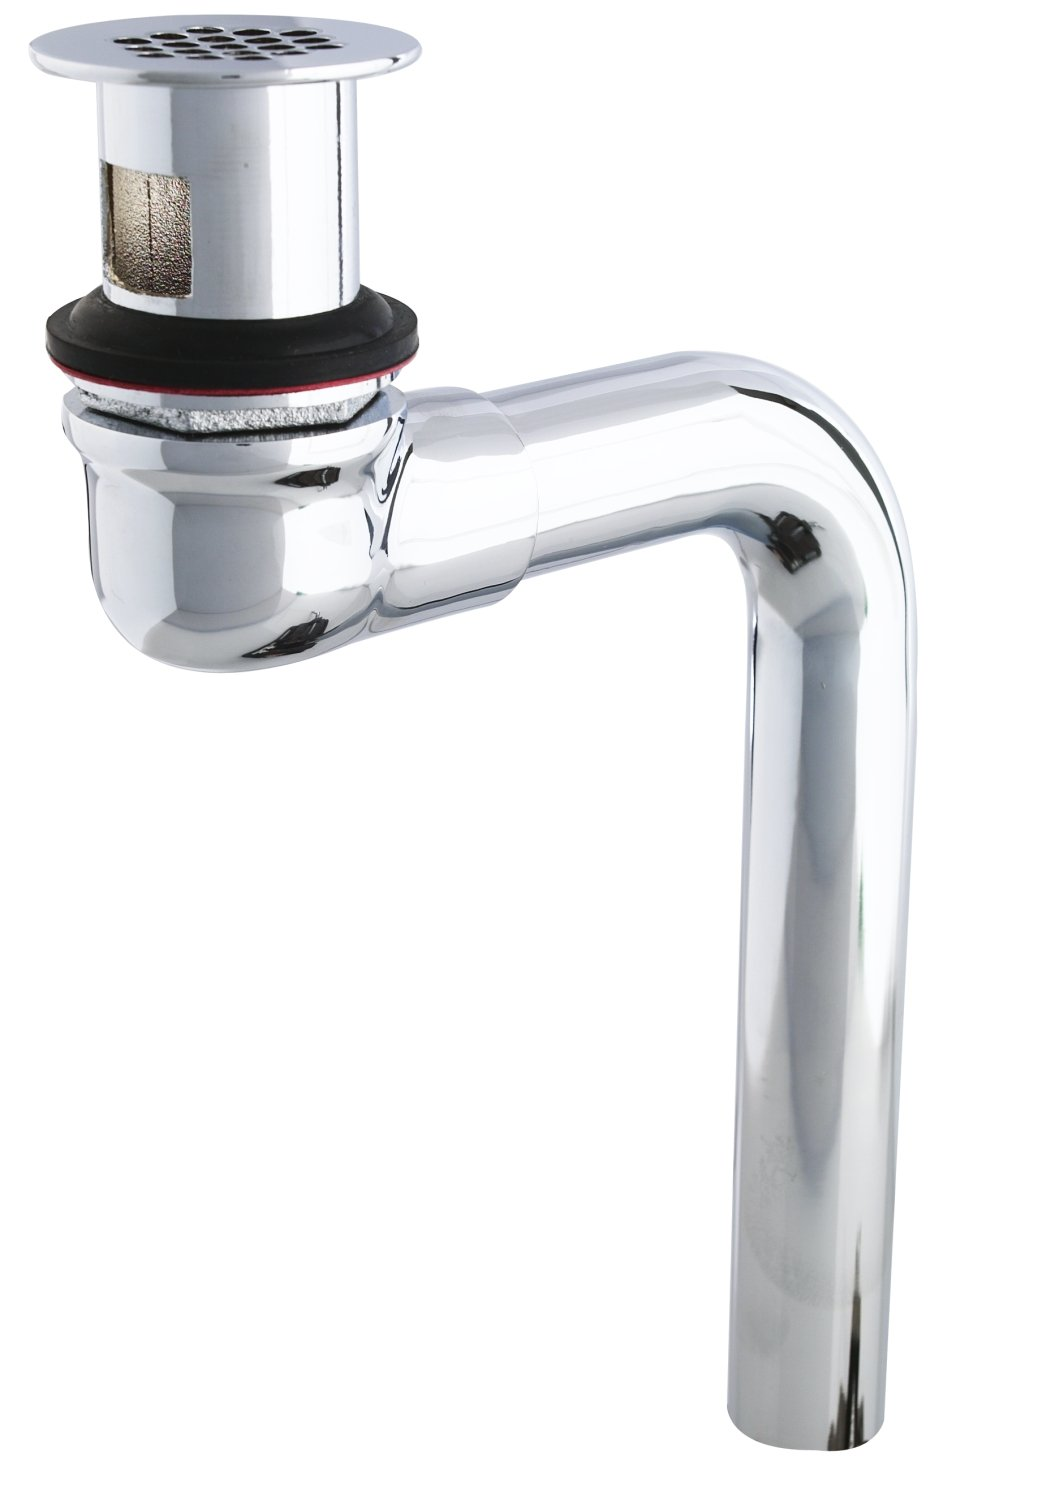 T&S Brass B-0898-OF Grid Drain Assembly, Offset, Polished Chrome